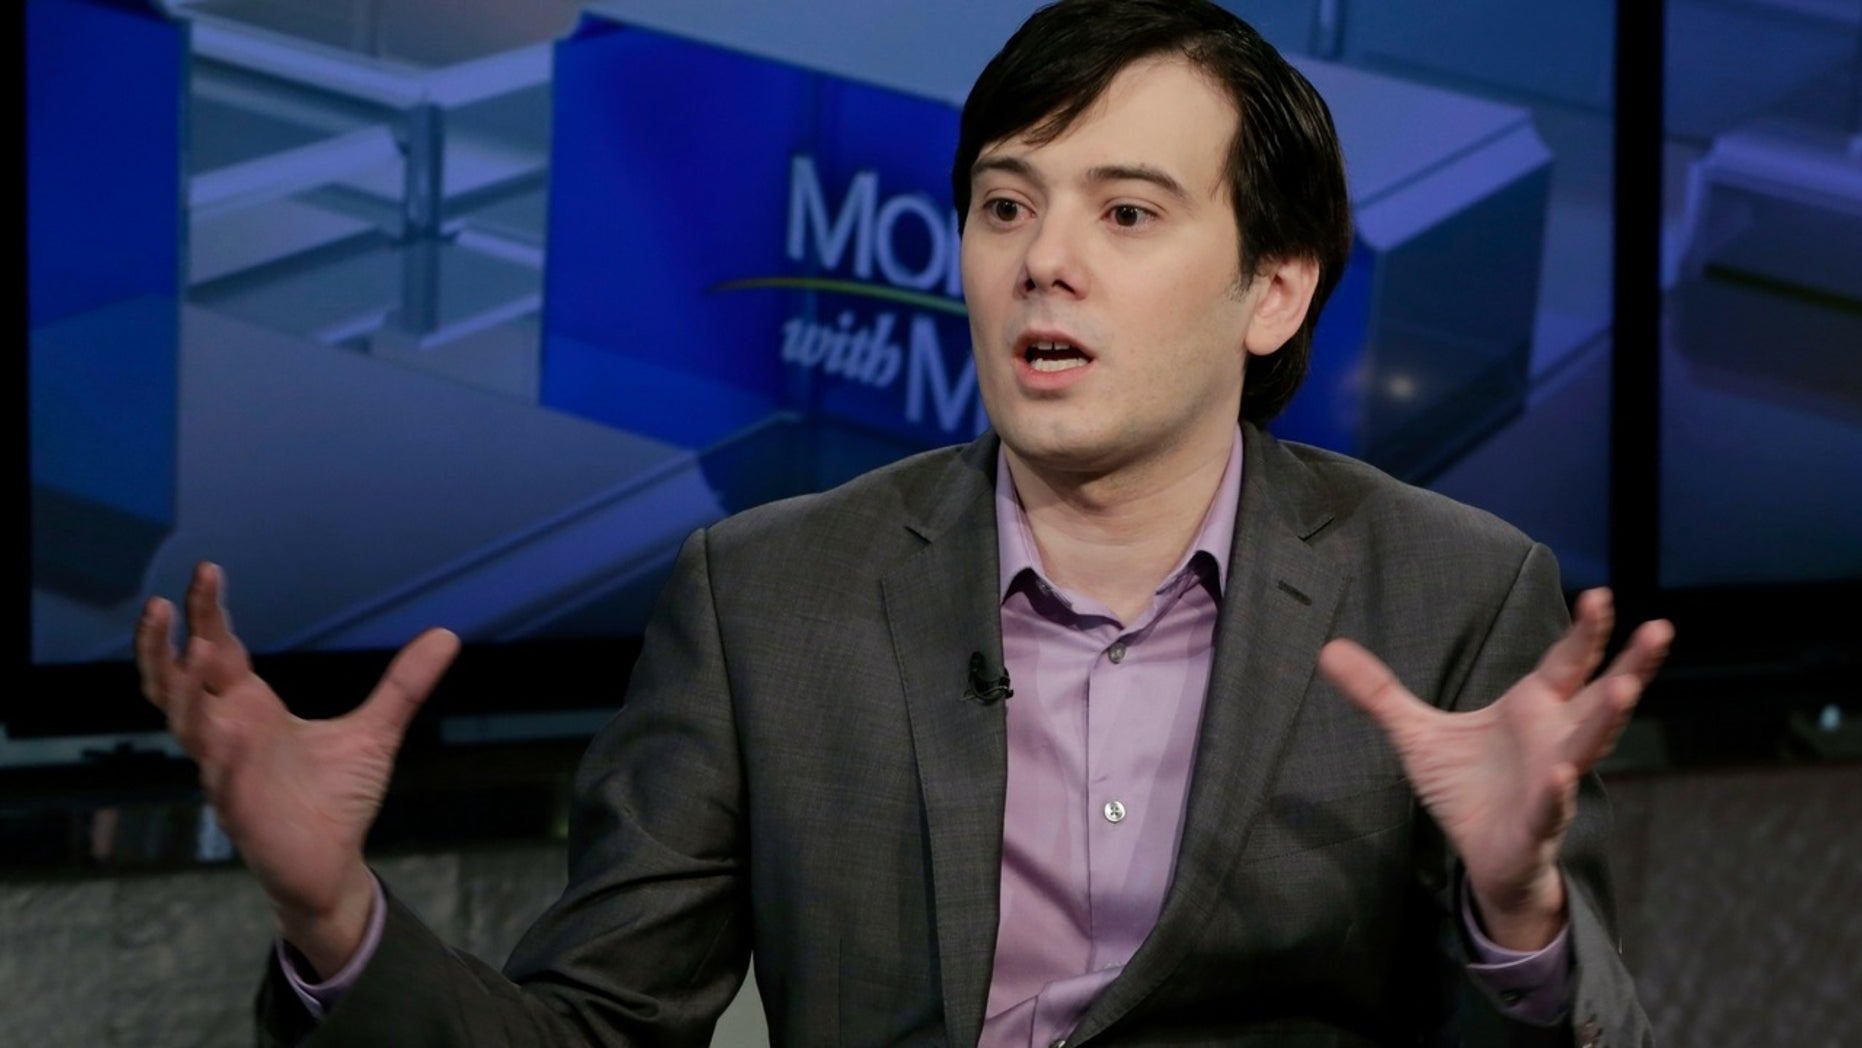 Martin Shkreli has been sentenced to seven years in prison for defrauding investors.